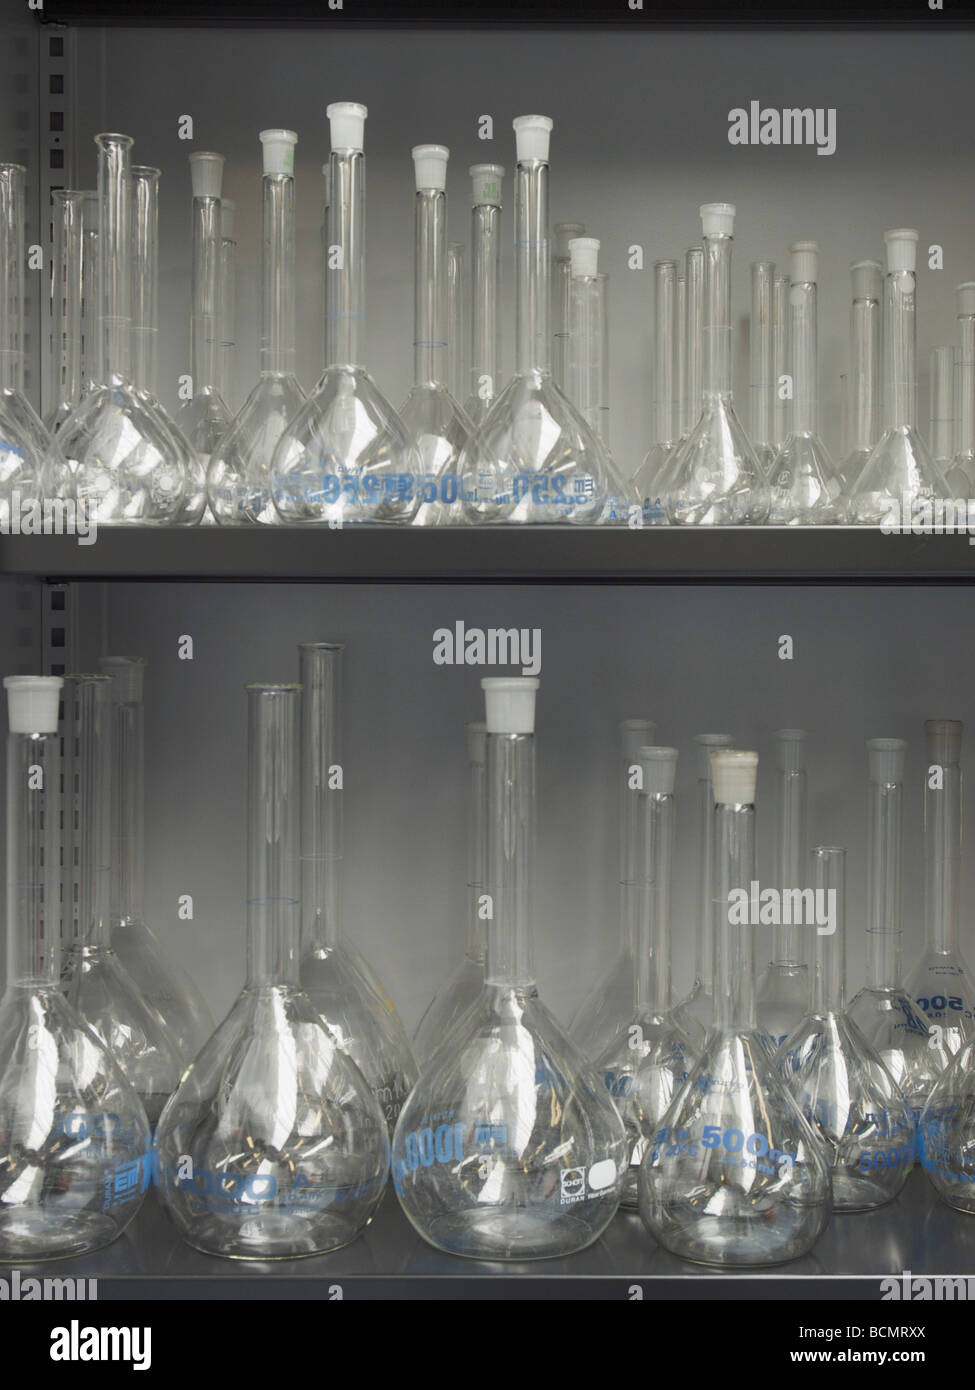 closet with lots of glass lab containers glassware stored on shelves in hospital laboratory Tilburg the Netherlands - Stock Image